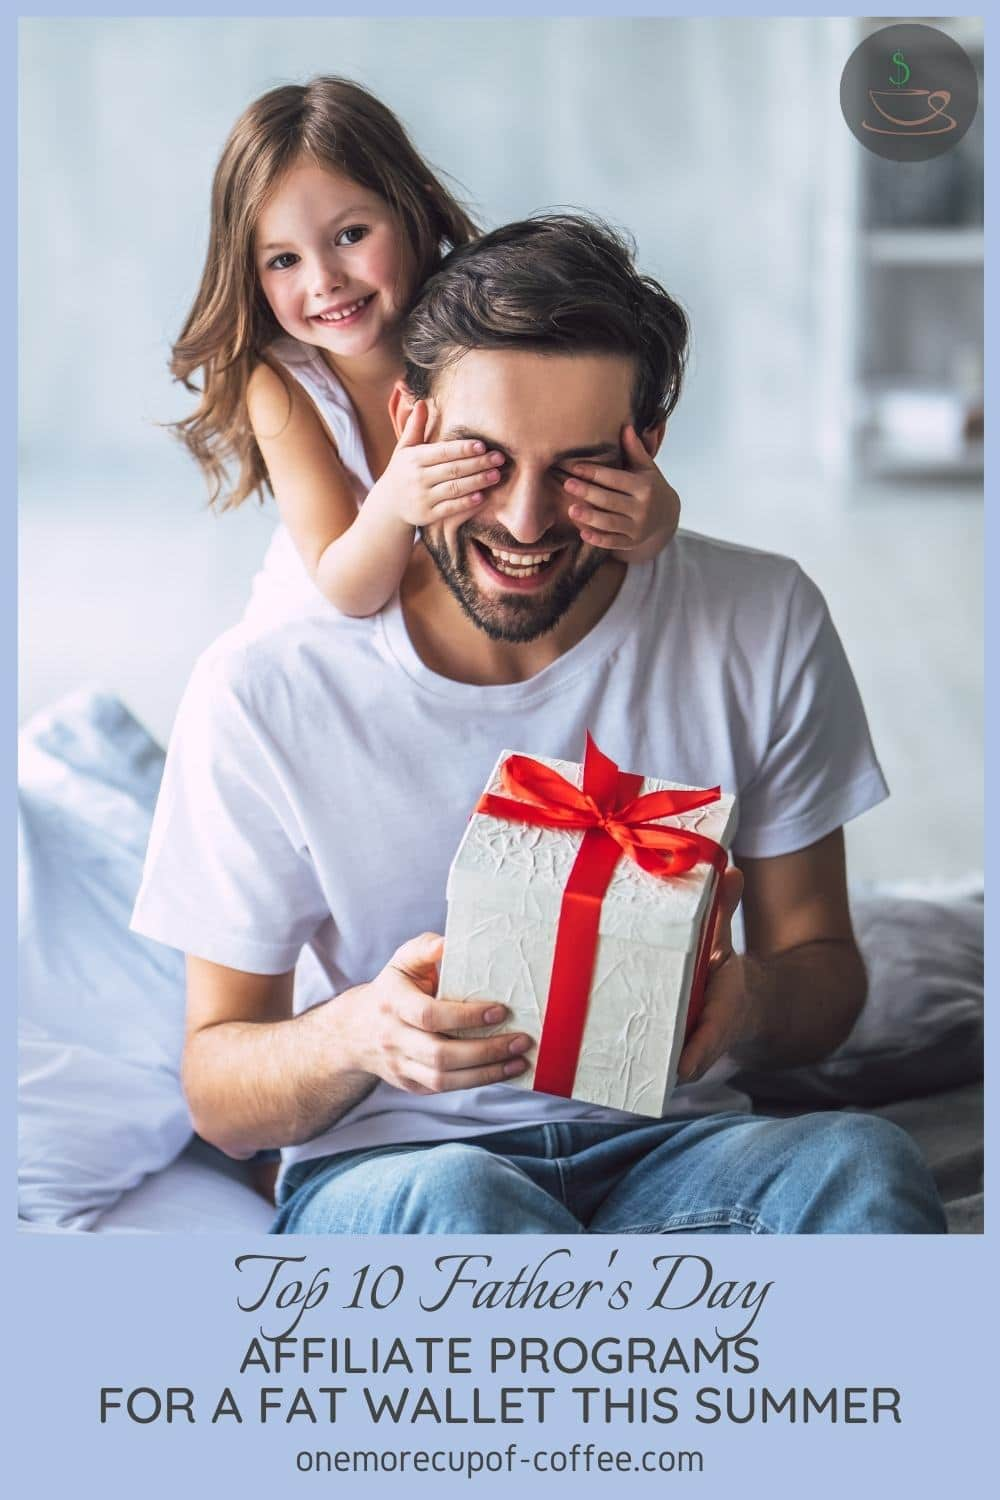 smiling little girl surprising her dad with a gift in white box and red ribbon while covering his eyes from the back; with text overlay at the bottom